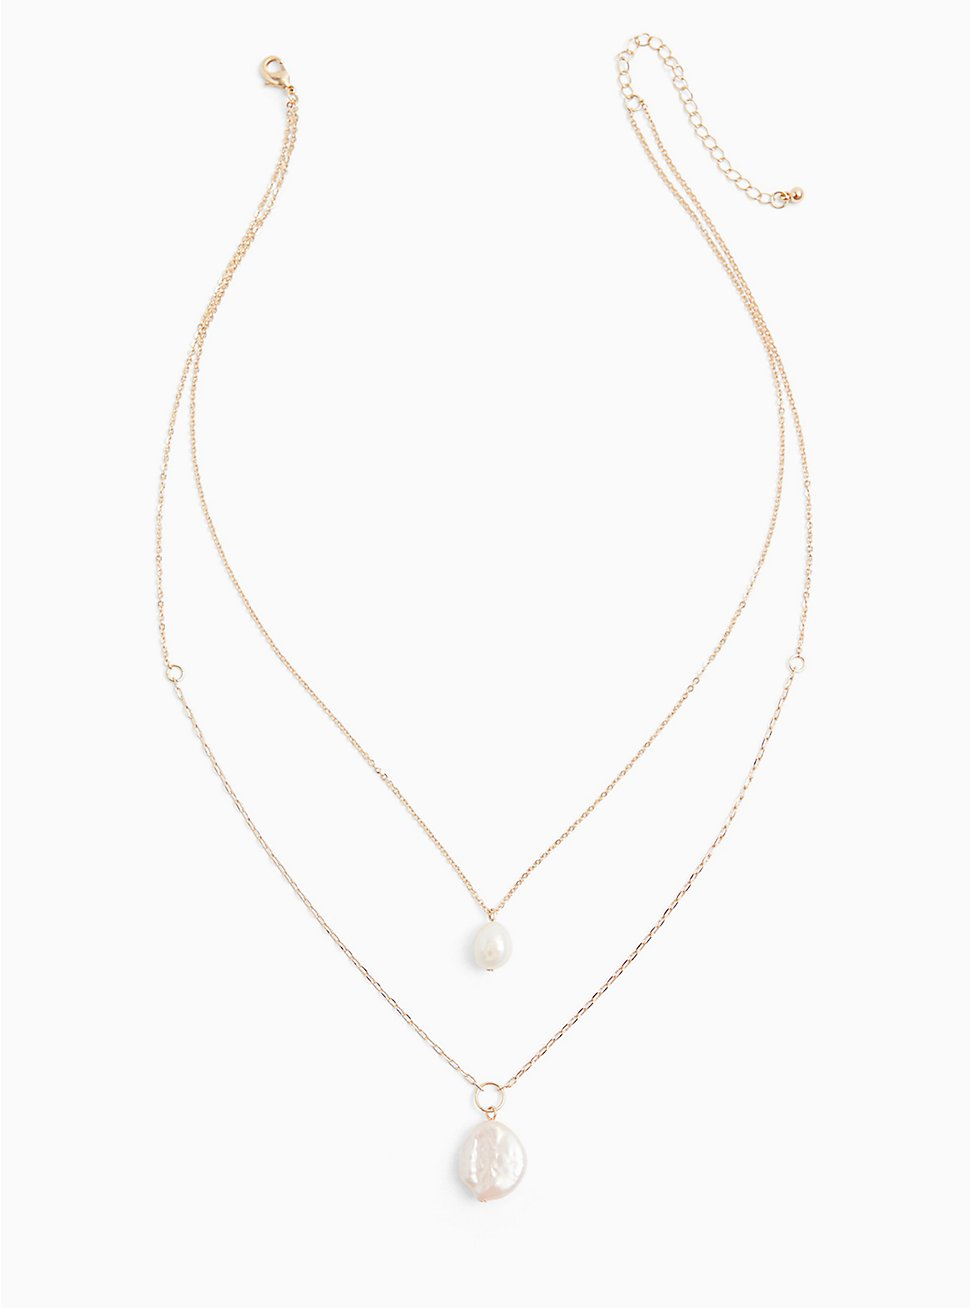 Plus Size Gold-Tone Faux Pearl Layered Necklace , , hi-res